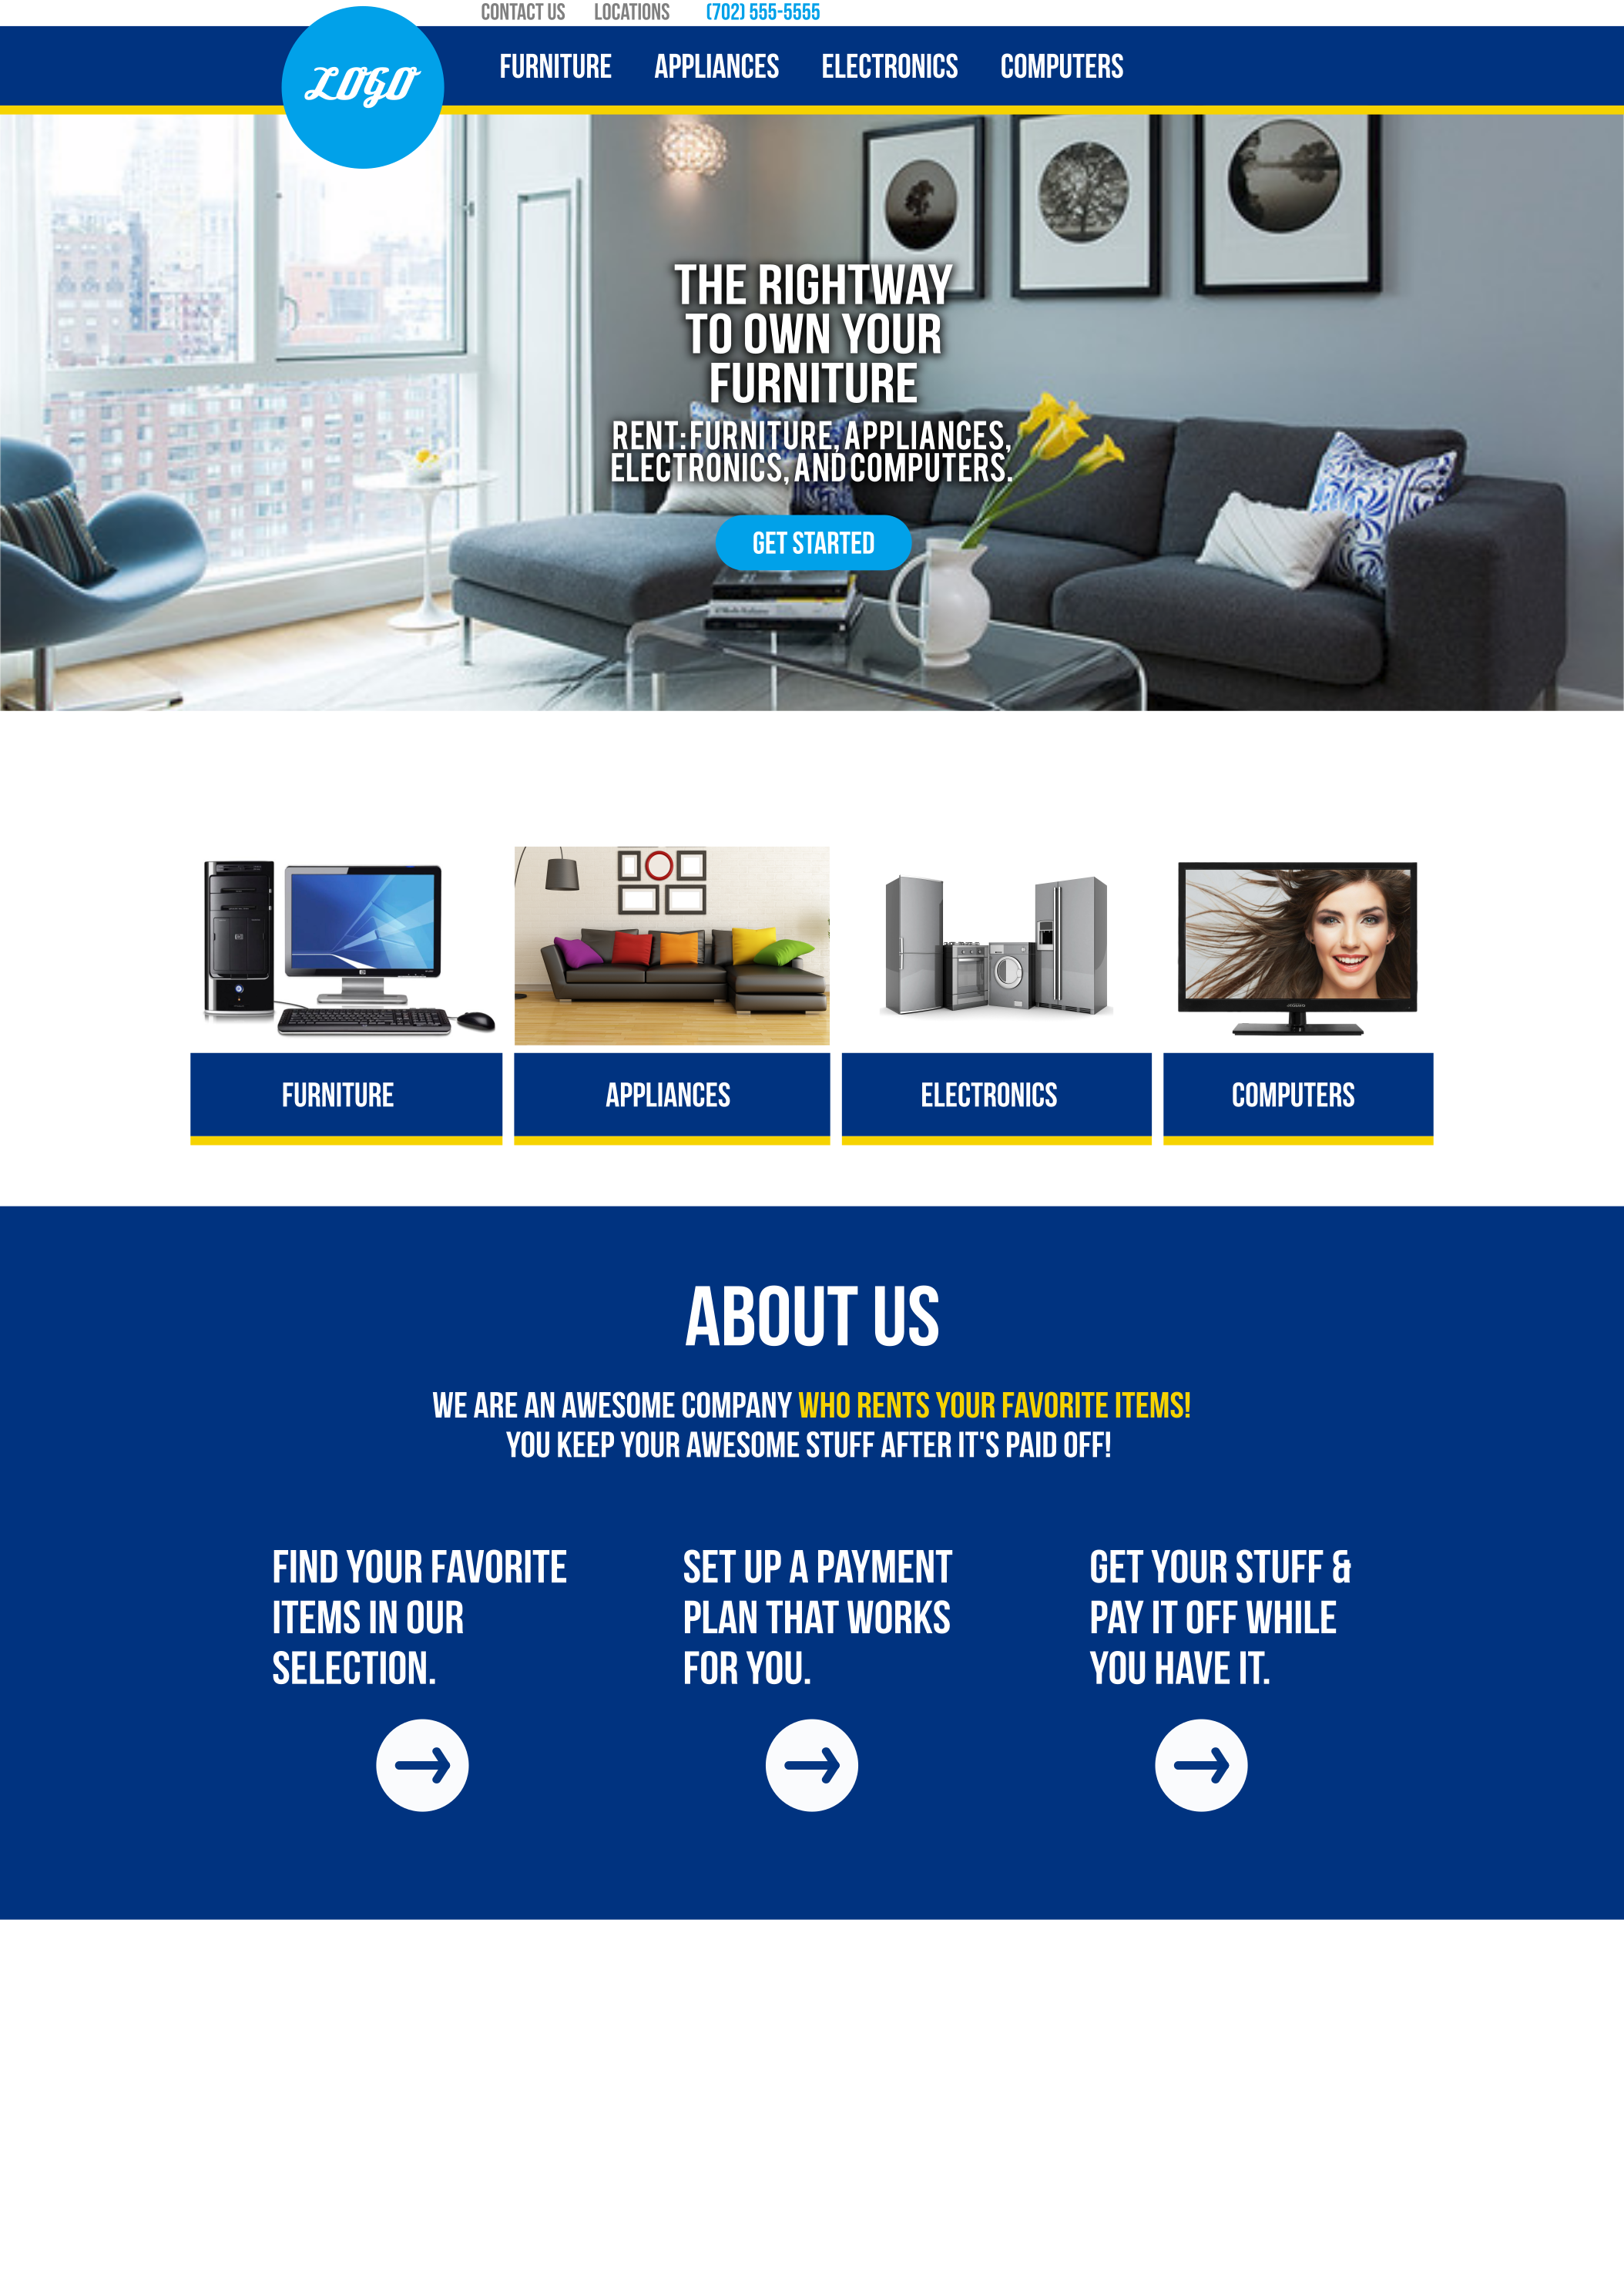 Rightway Furniture U2013 Website Mockup1